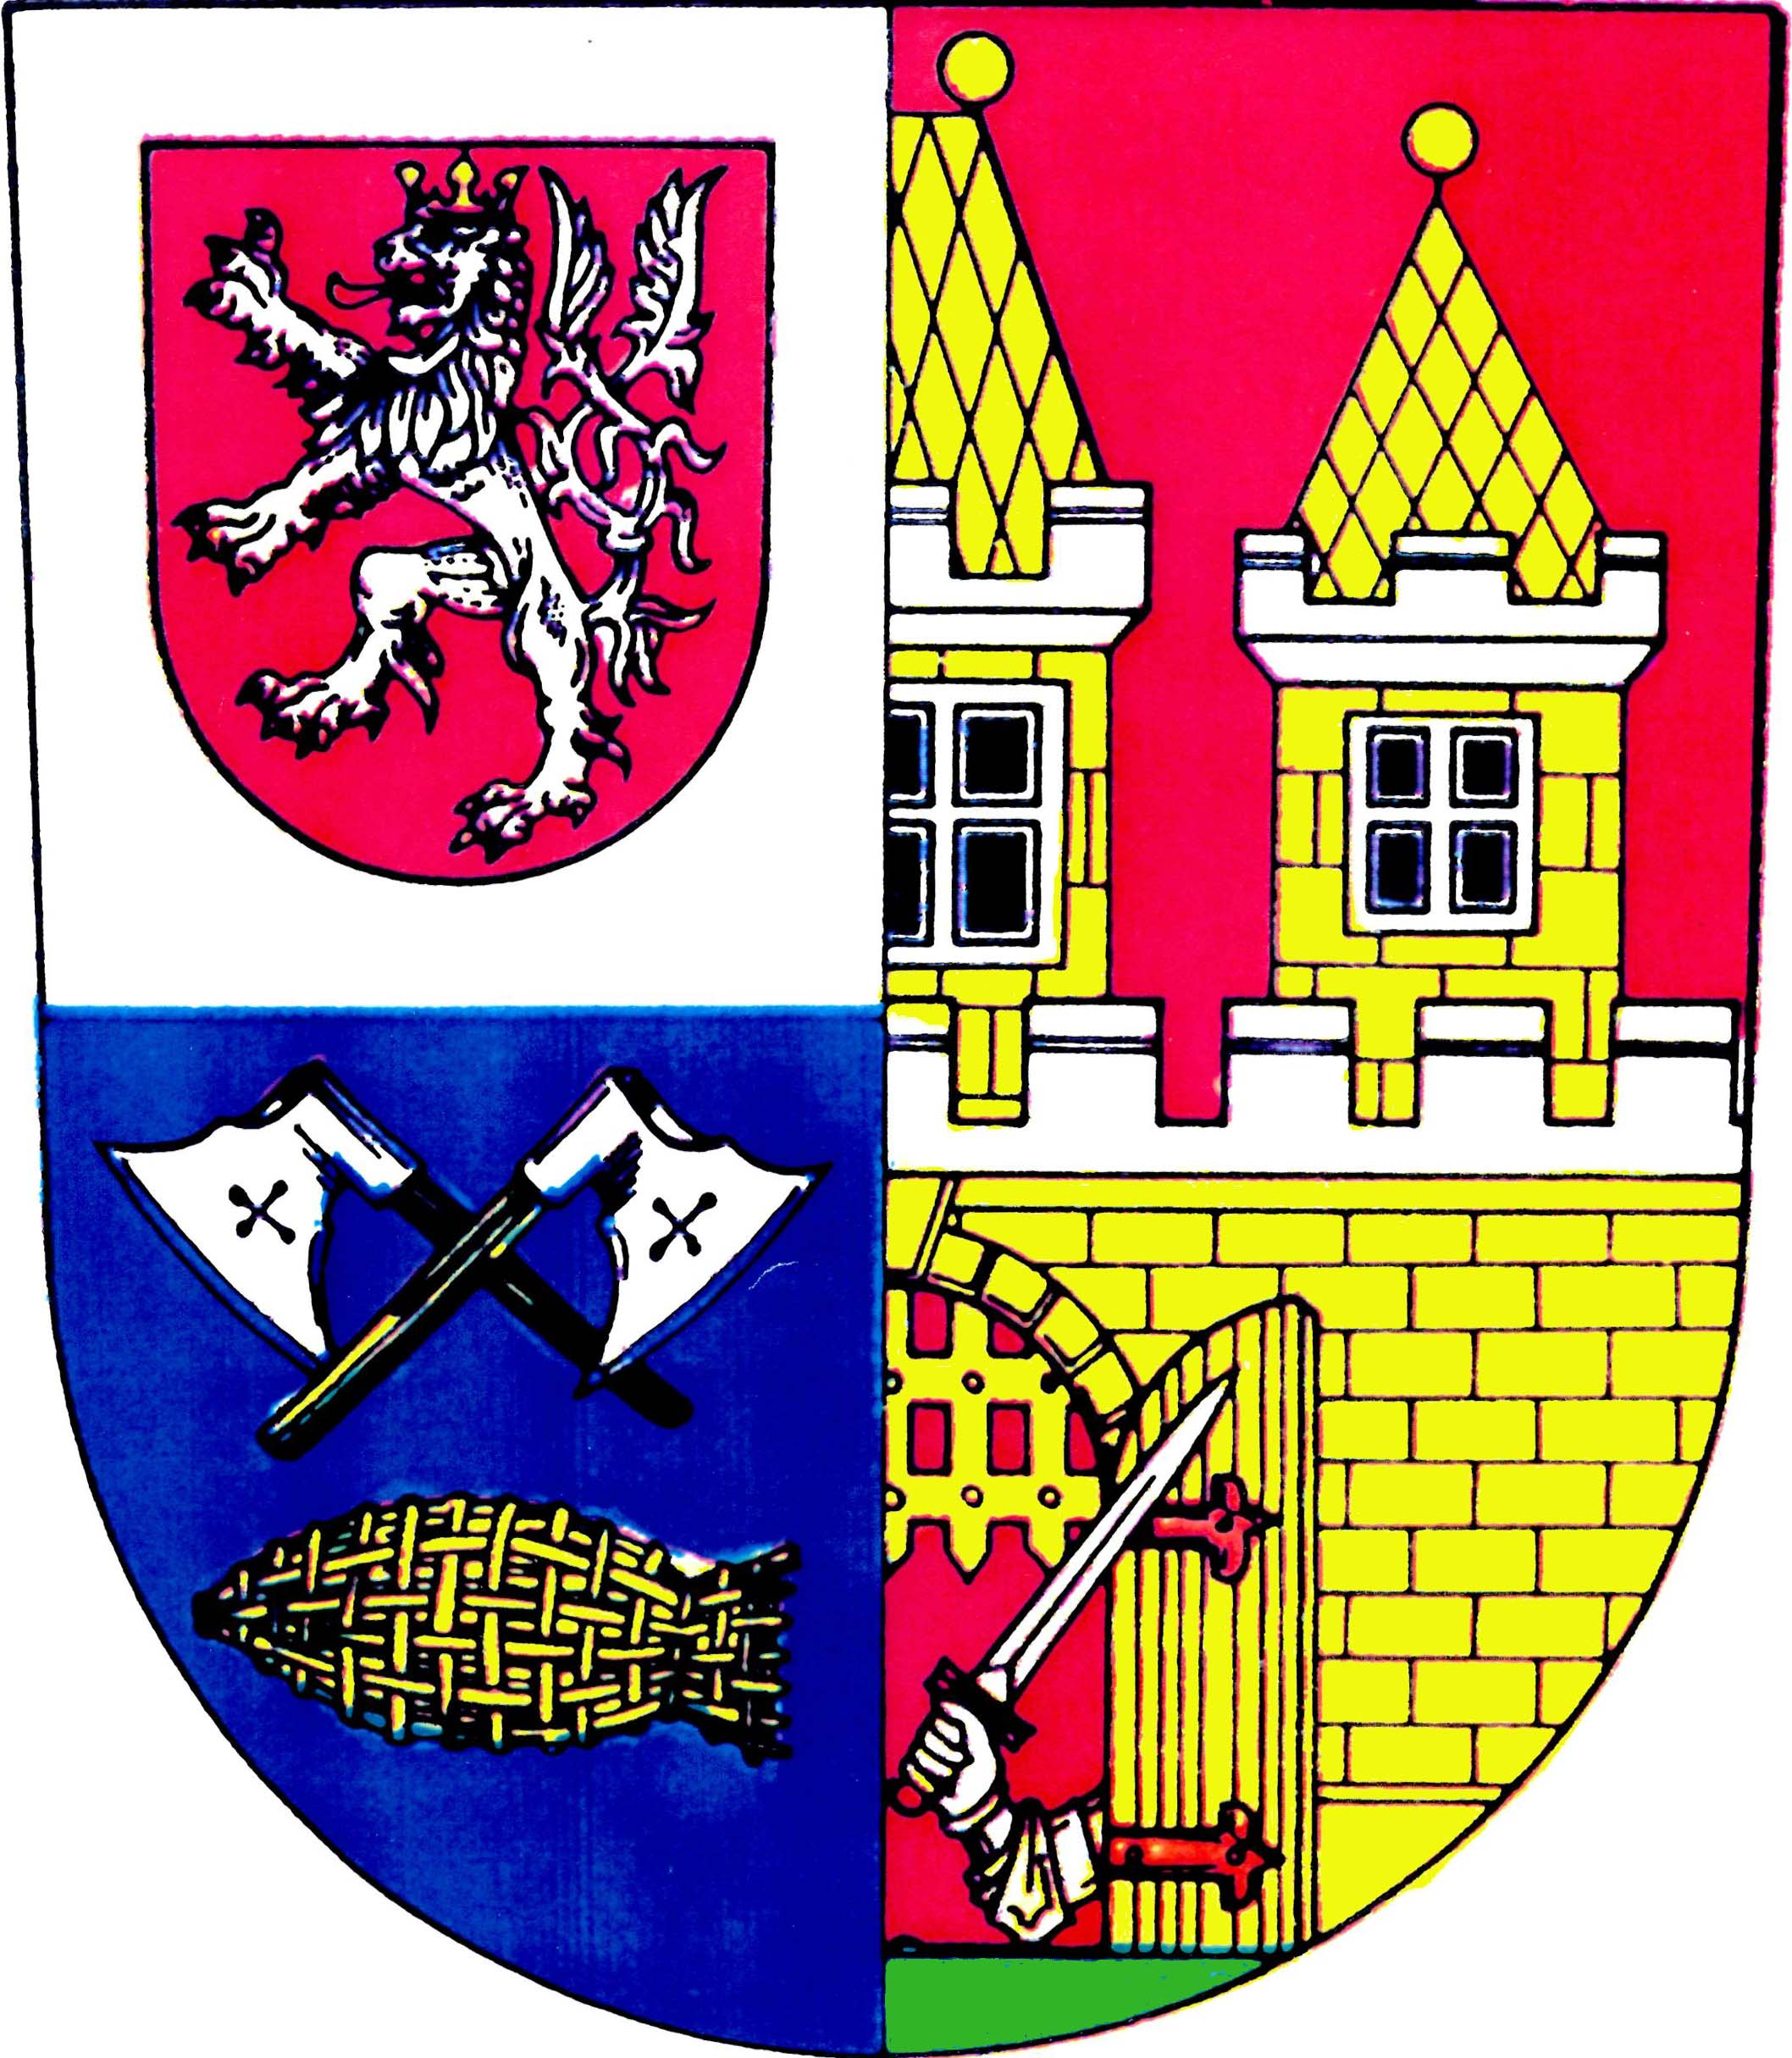 http://upload.wikimedia.org/wikipedia/commons/6/6f/Prague_10_CZ_CoA.jpg